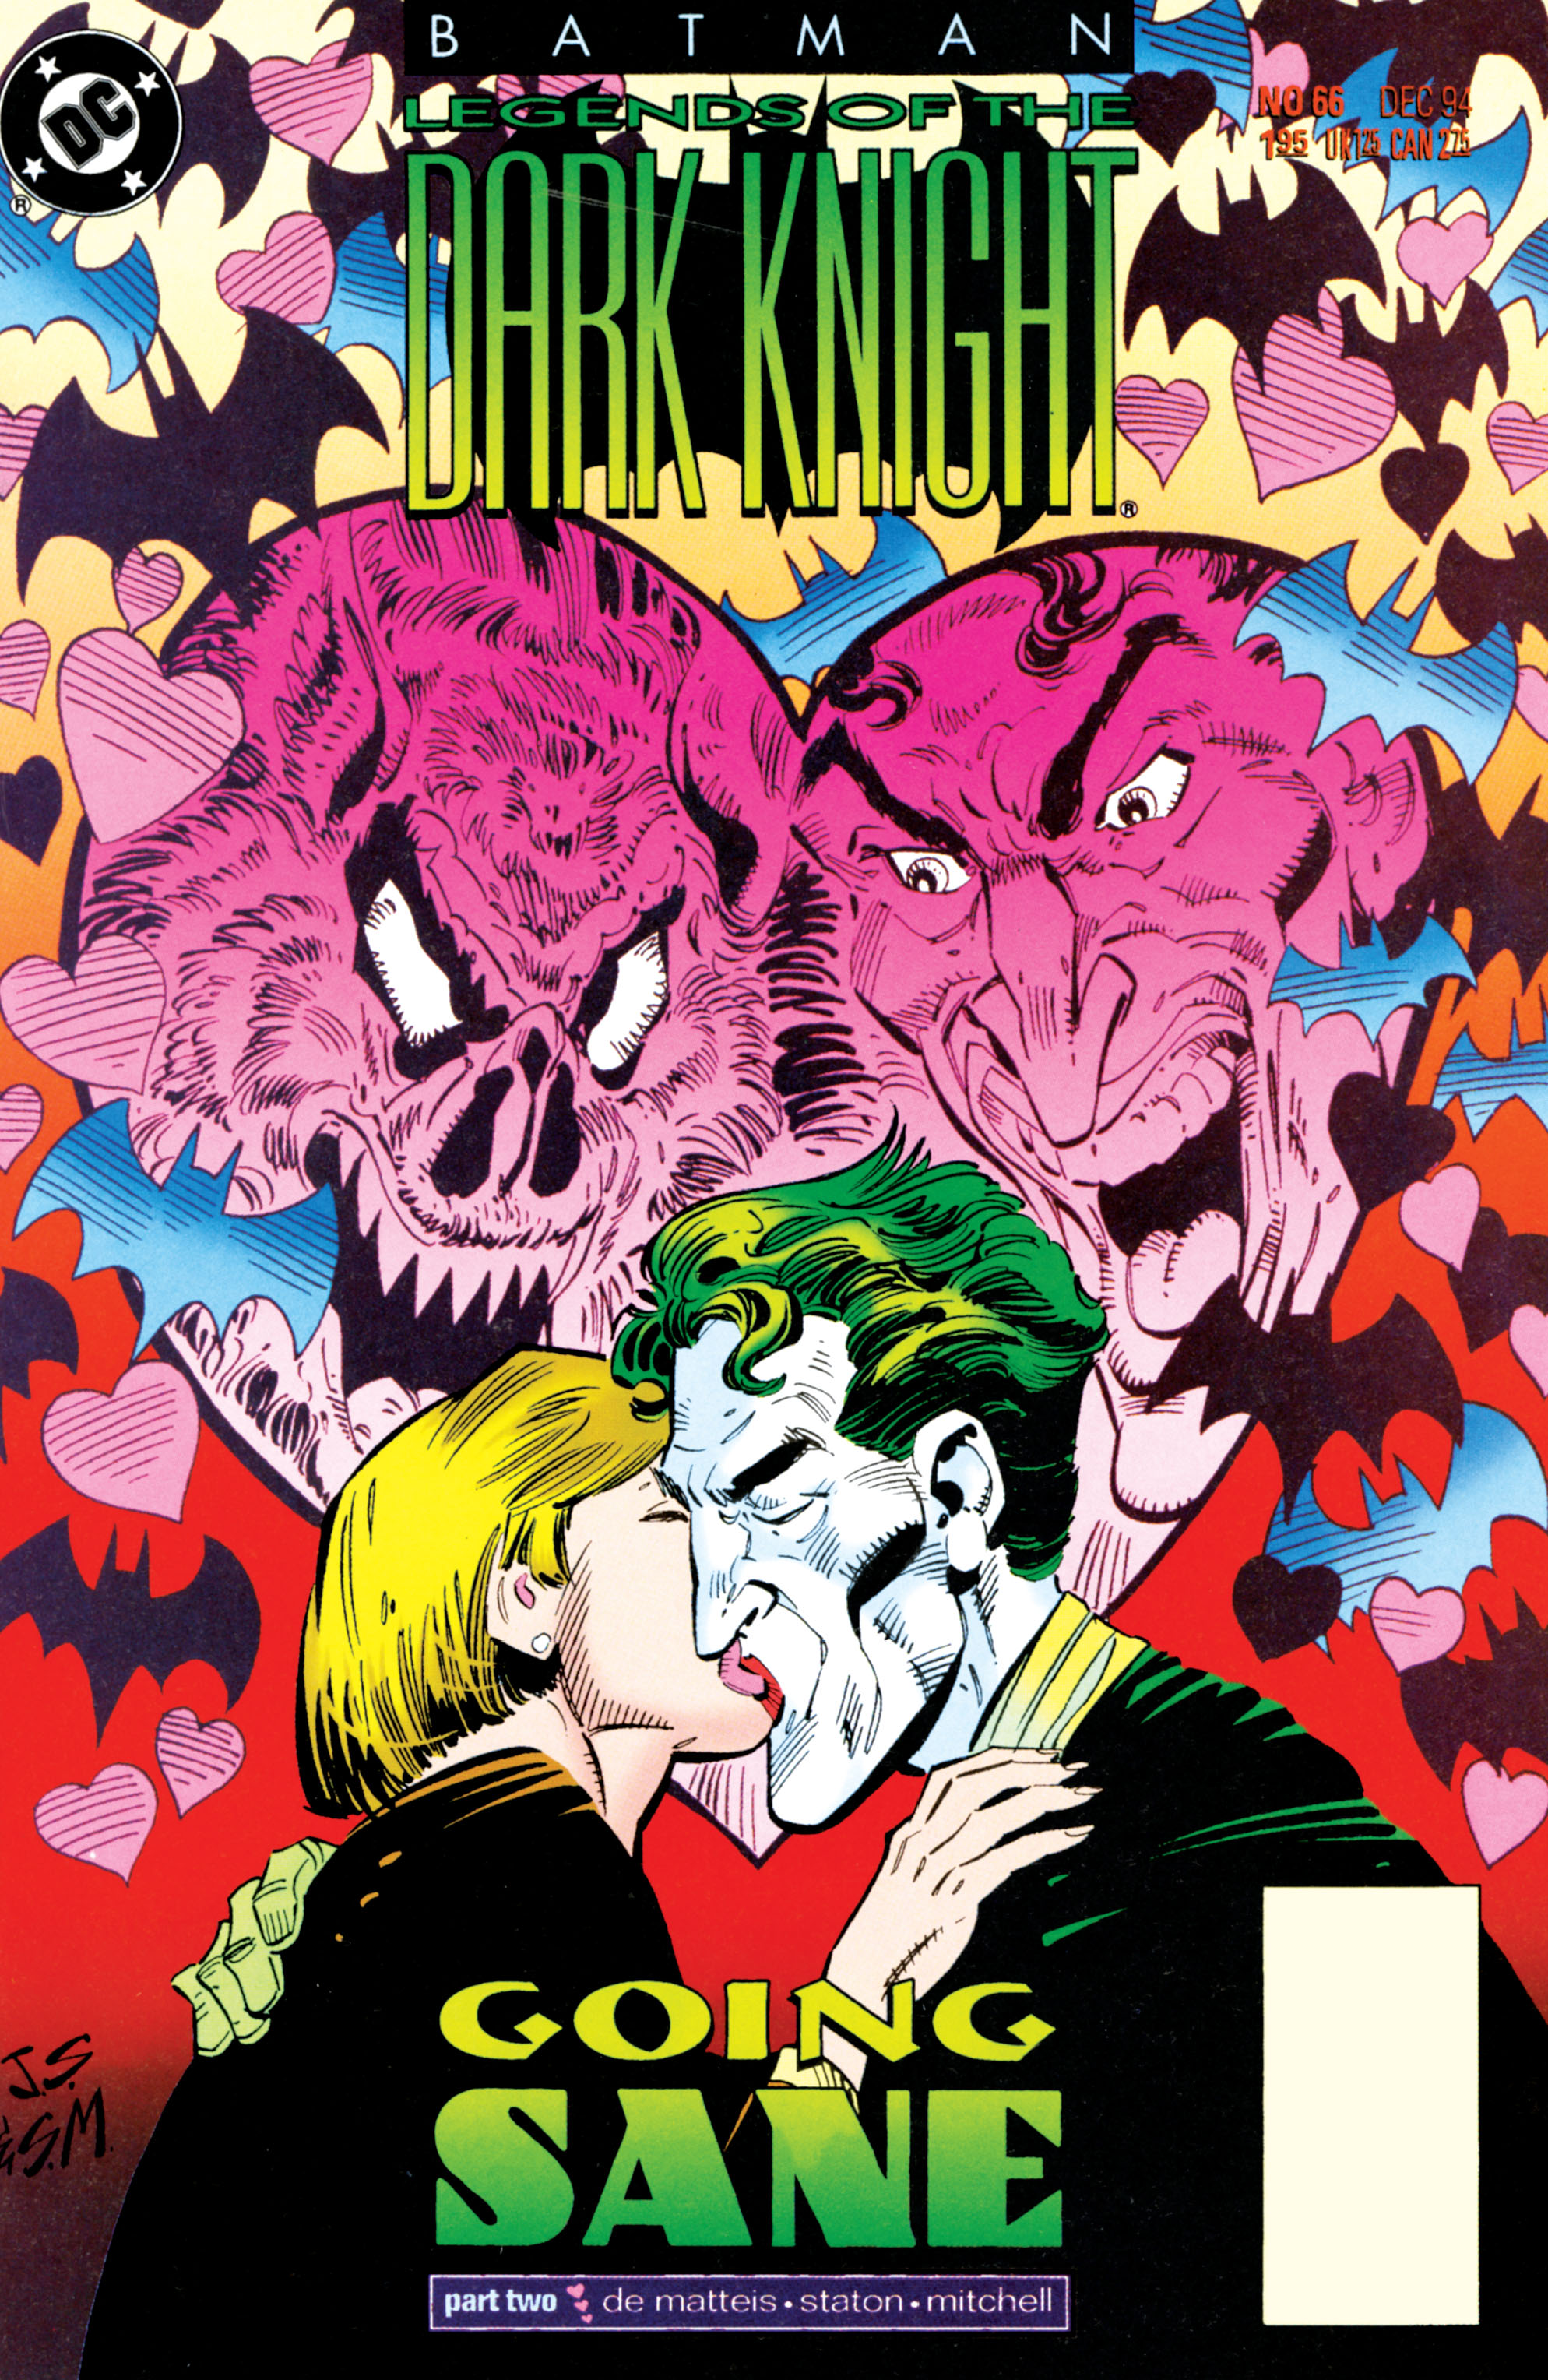 Batman: Legends of the Dark Knight (1989) #66, cover penciled by Joe Staton & inked by Steve Mitchell.